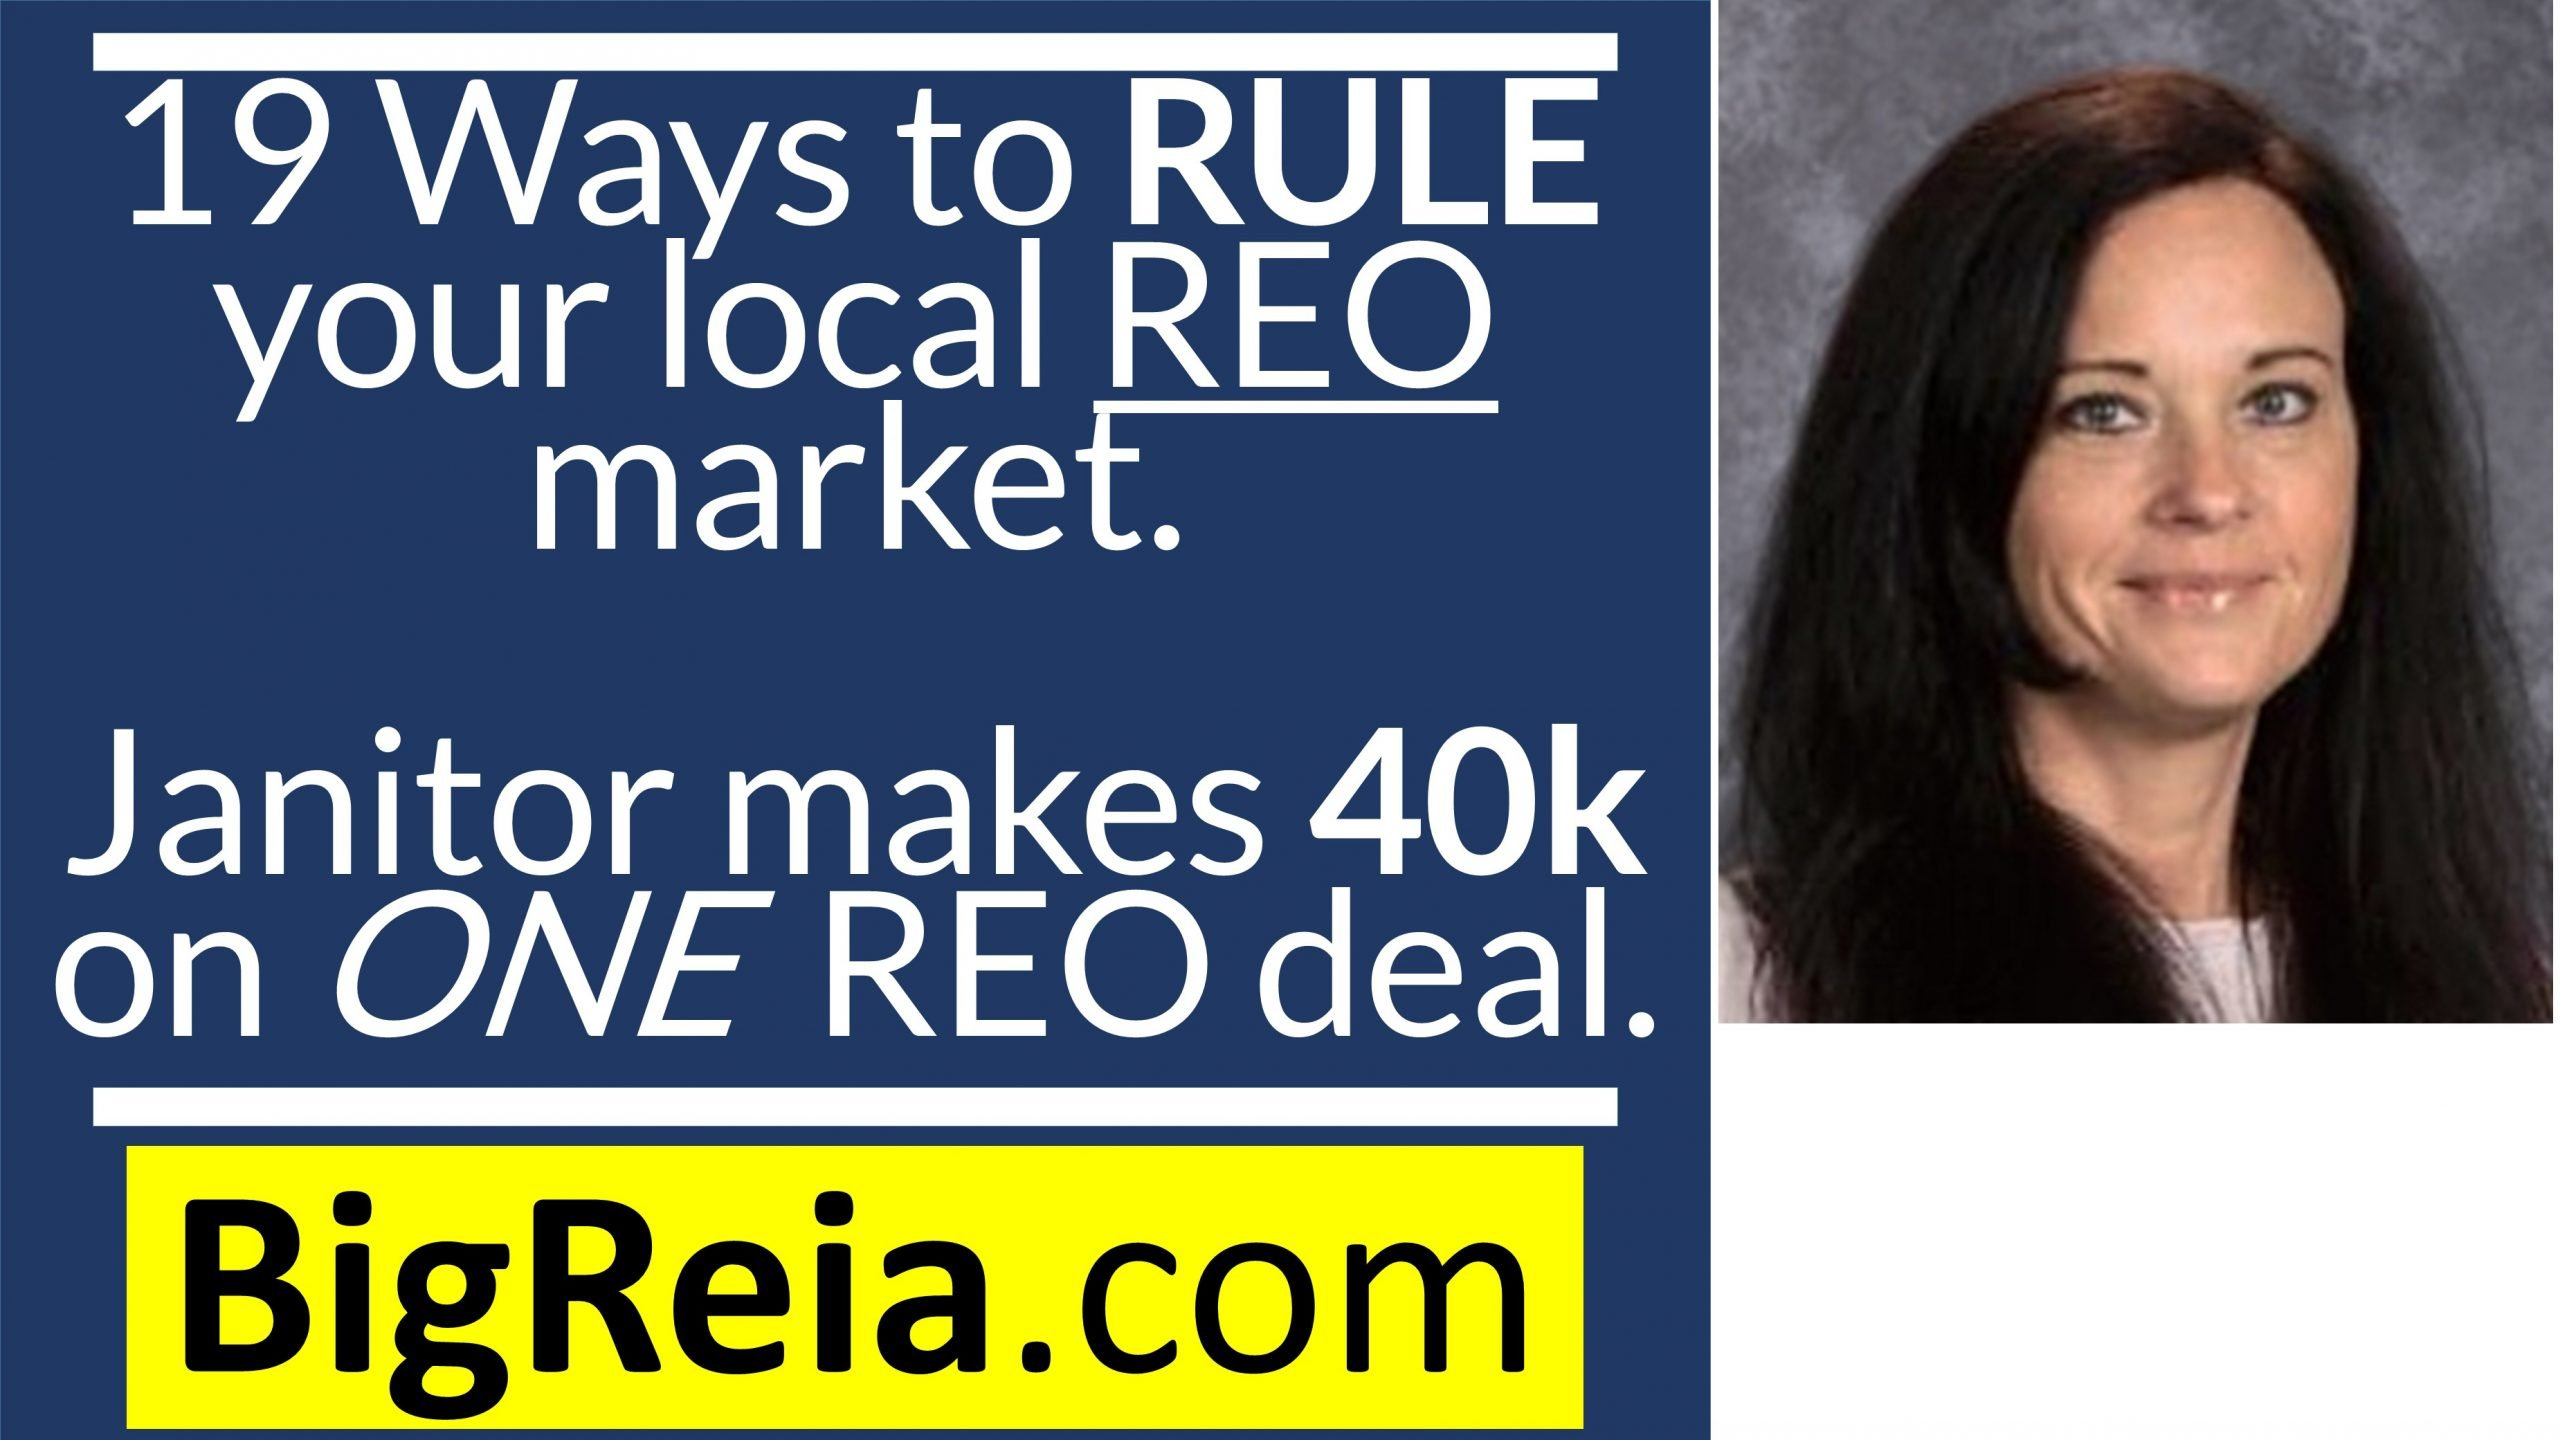 How I do so many REO deals, 19 ways to RULE your REO market; janitor make yearly income on ONE deal.